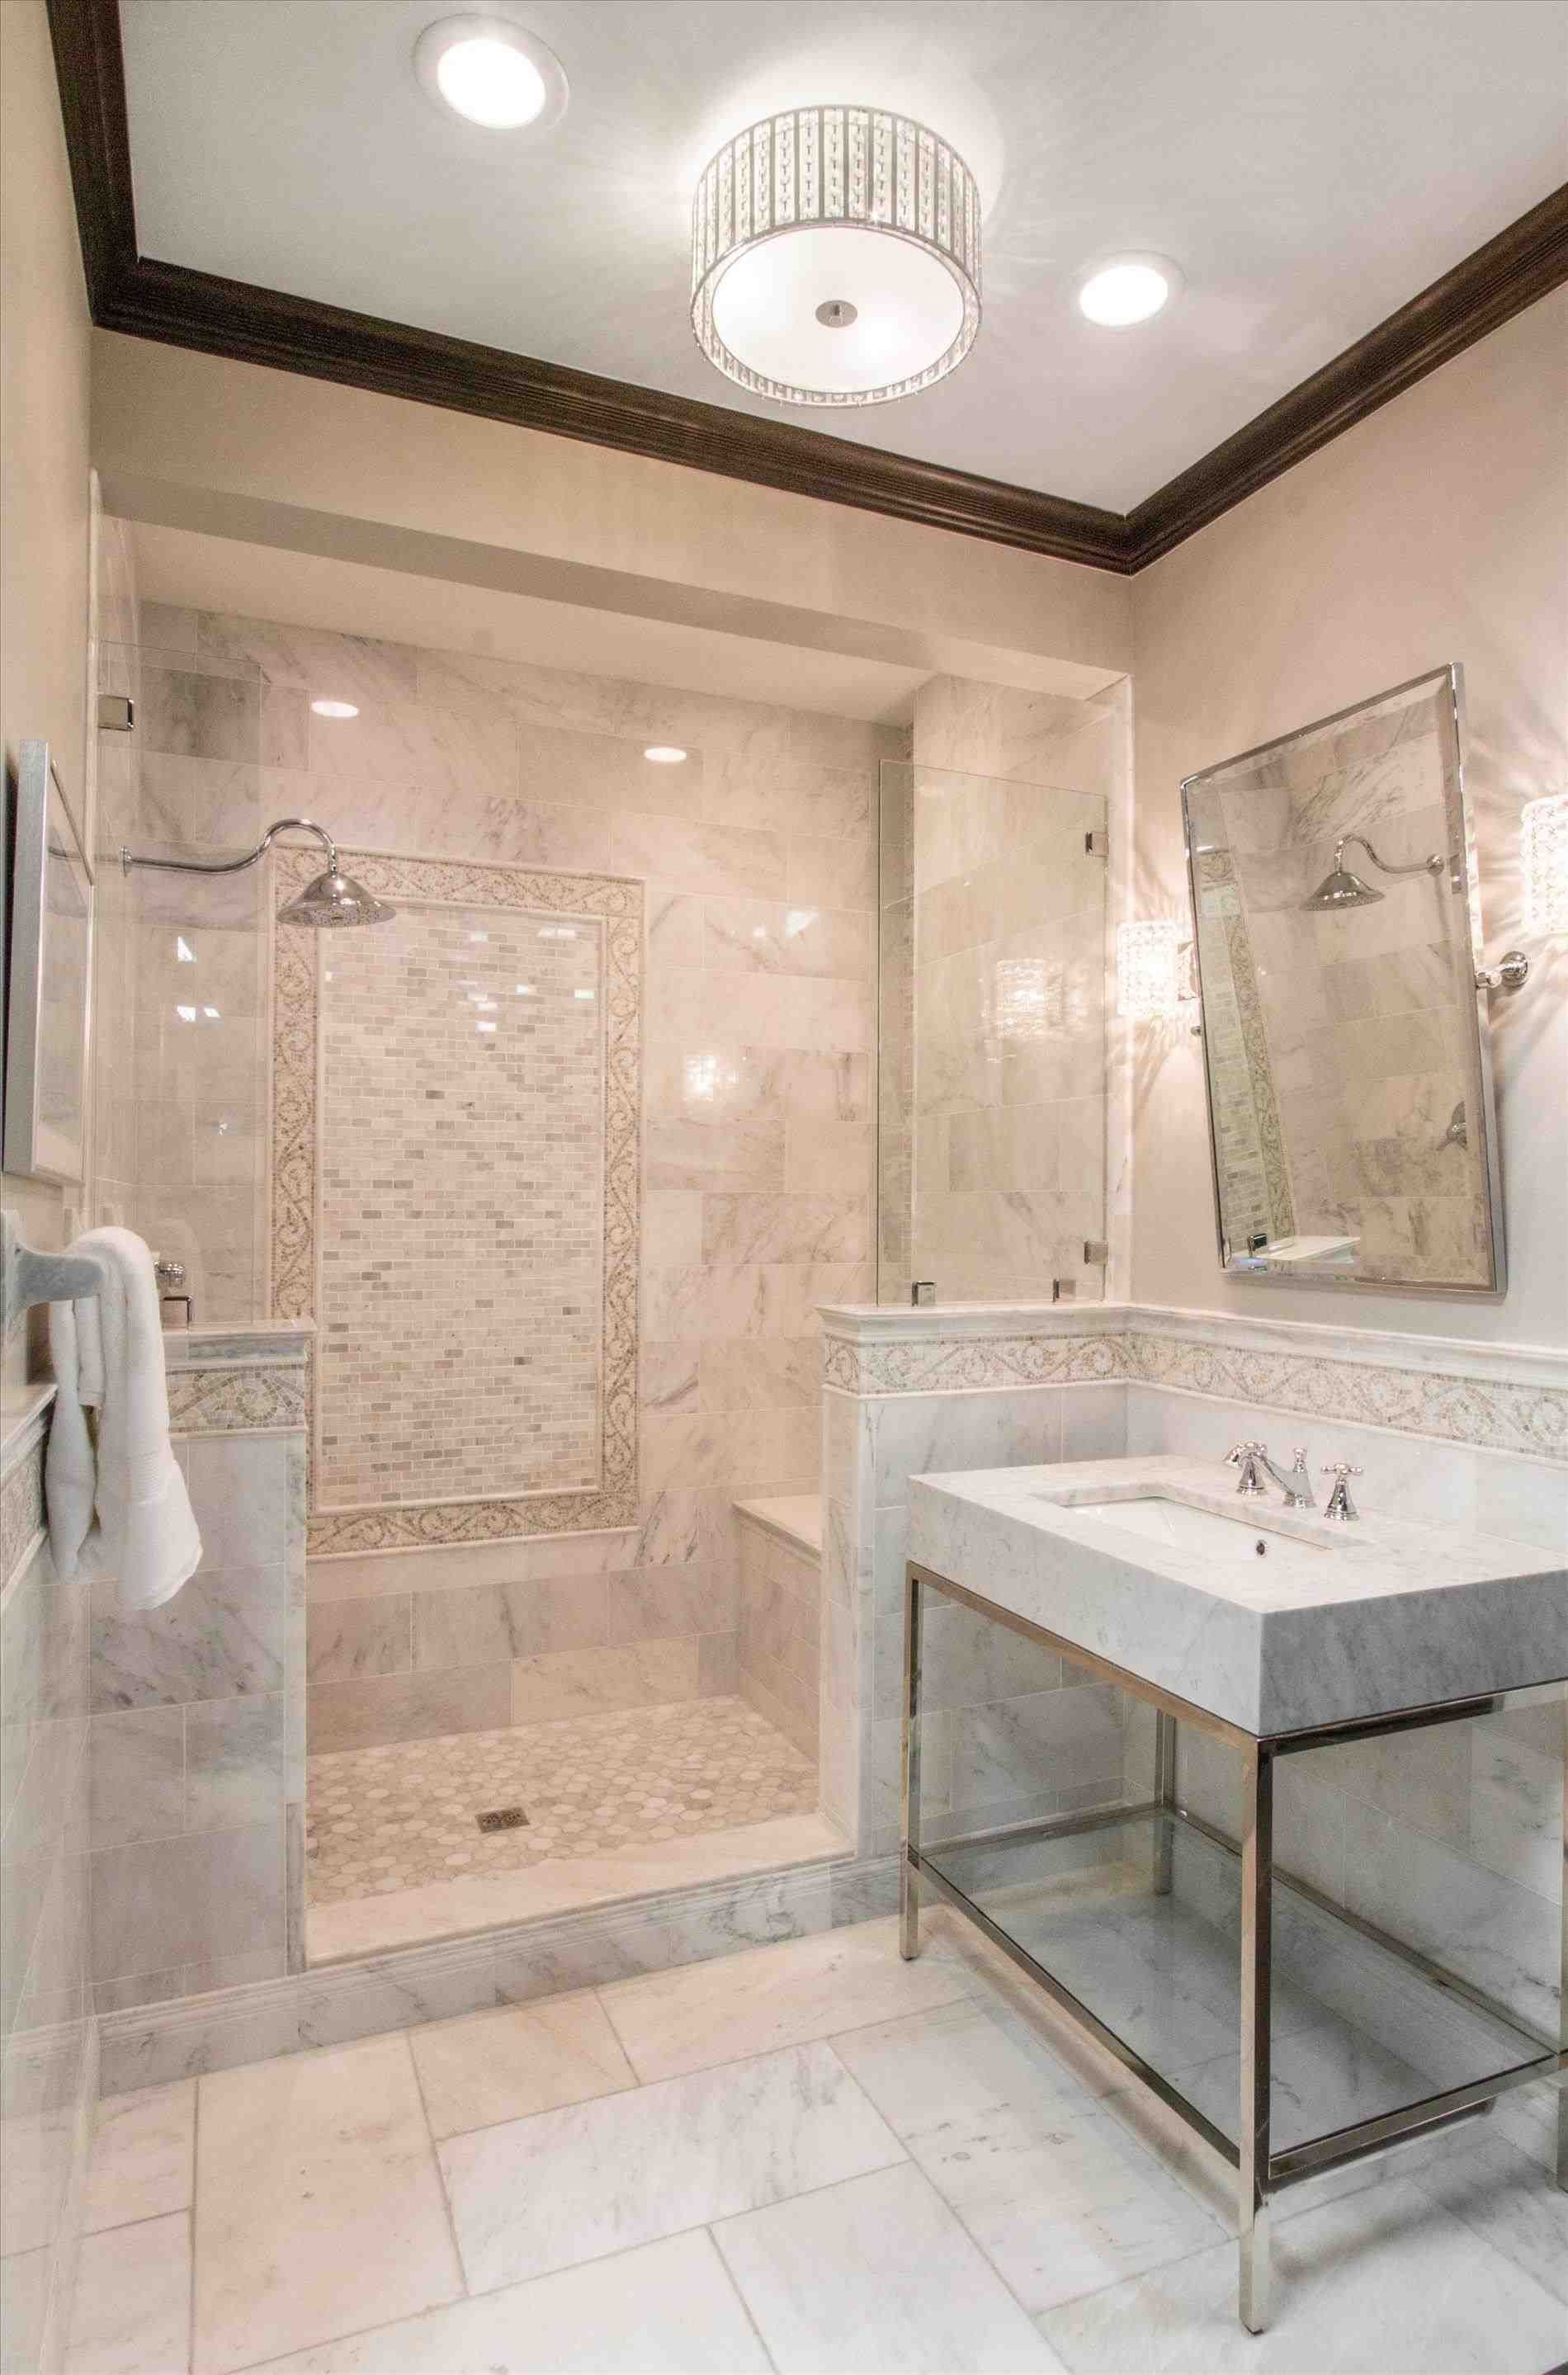 This Traditional Marble Bathrooms 10 Under 10 Tile Flooring Kitchen Granite Coun In 2020 Patterned Bathroom Tiles Bathroom Remodel Master Marble Bathroom Designs